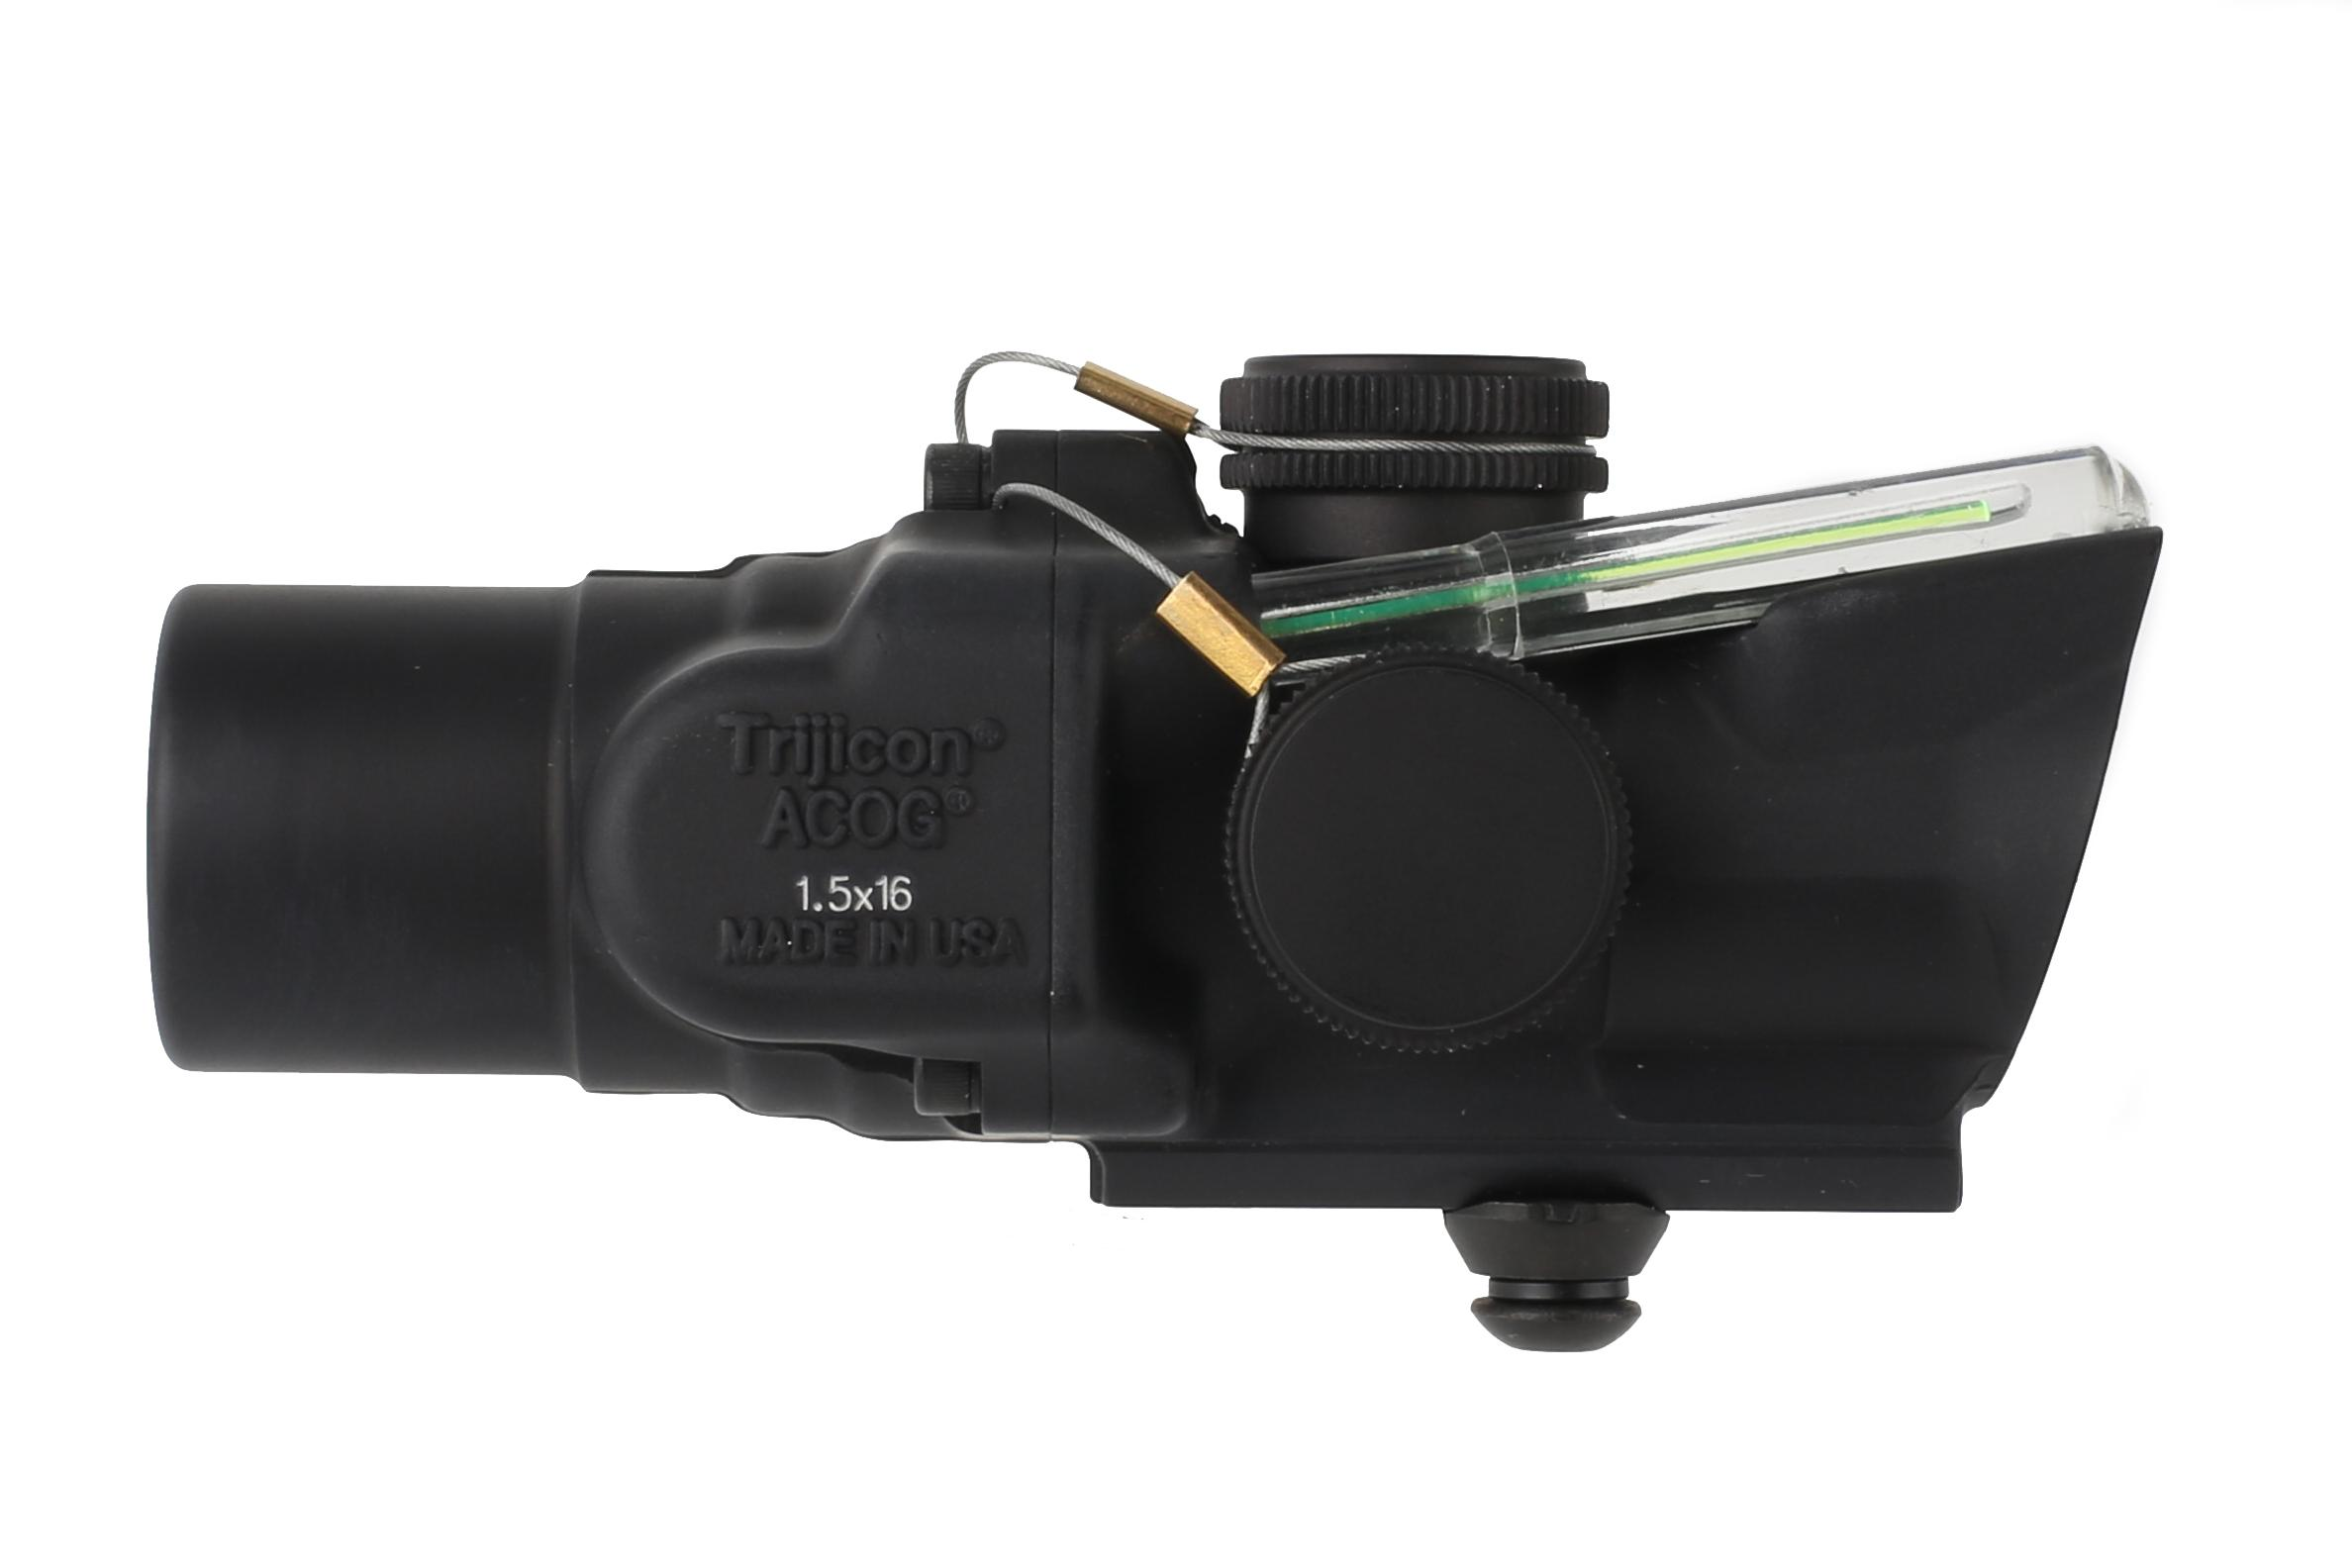 Trijicon ACOG 1.5x16S low with ACSS CQB-M5 reticle is a compact prism scope with exceptional glass clarity and green illumination